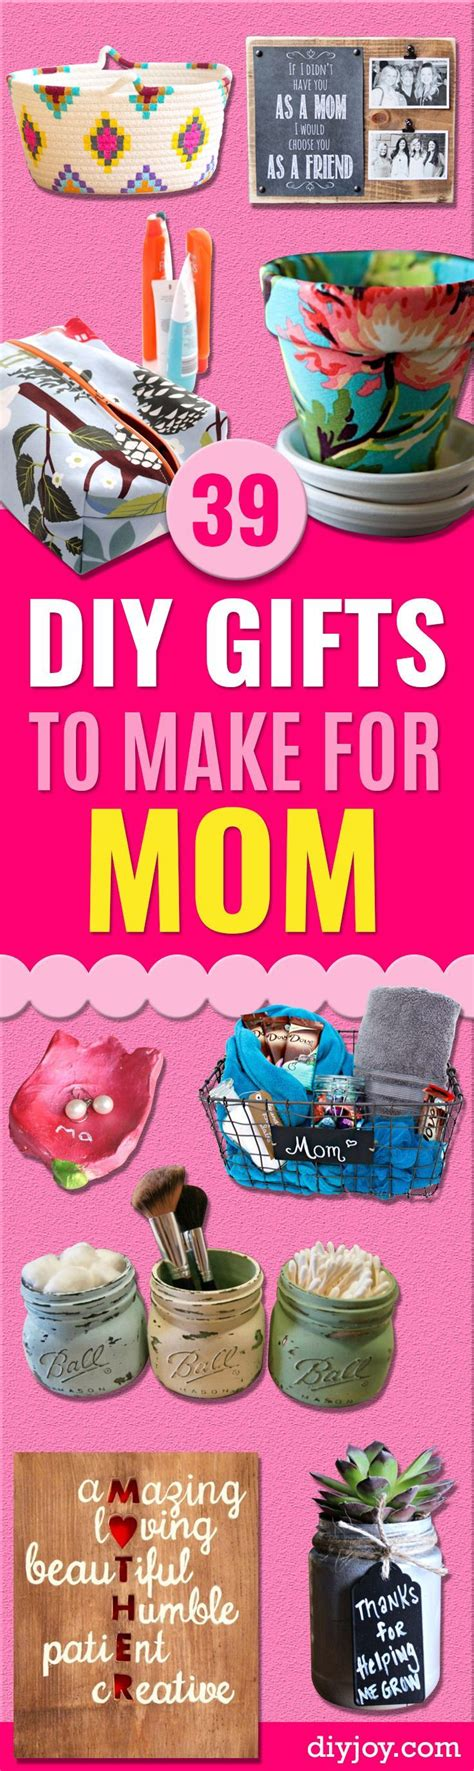 39 creative diy gifts to make for mom creative photos